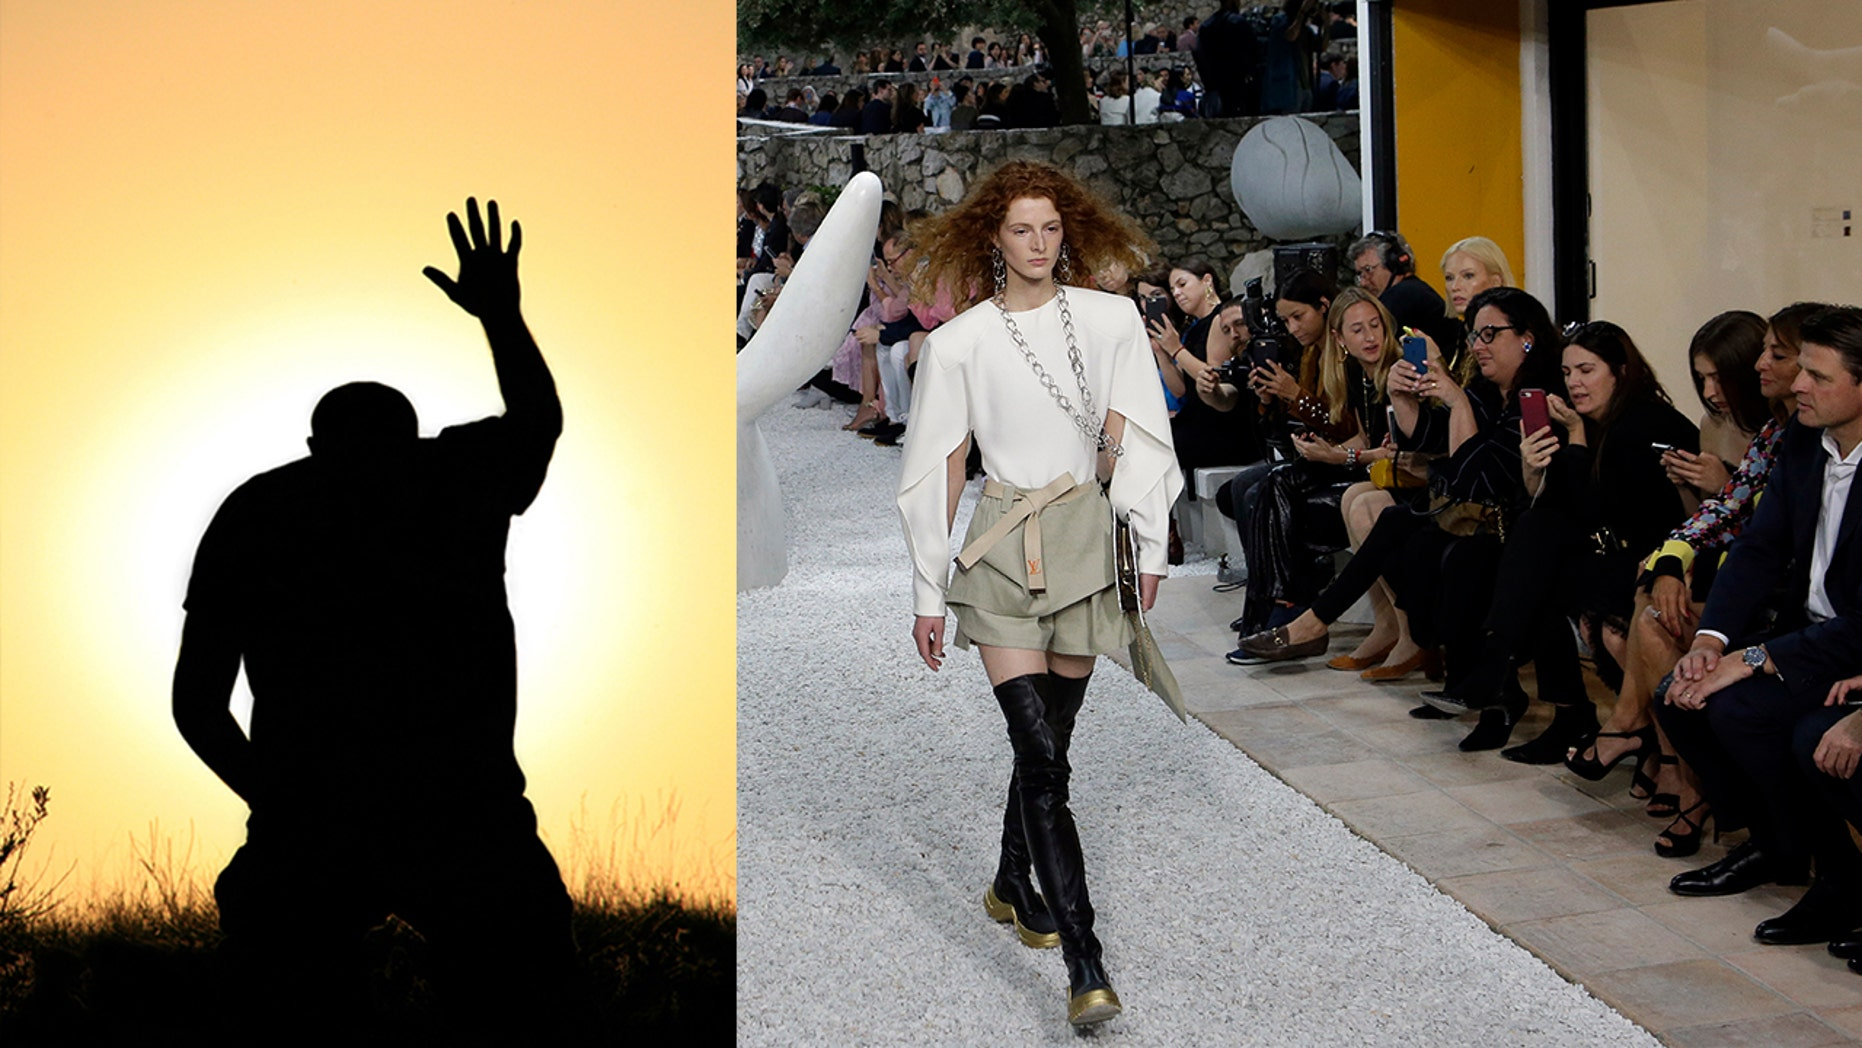 A shaman was allegedly hired to stop any sudden storms ahead of the Louis Vuitton Cruise 2019 Collection presented at the Maeght Foundation in Saint Paul de Vence, southeastern France.